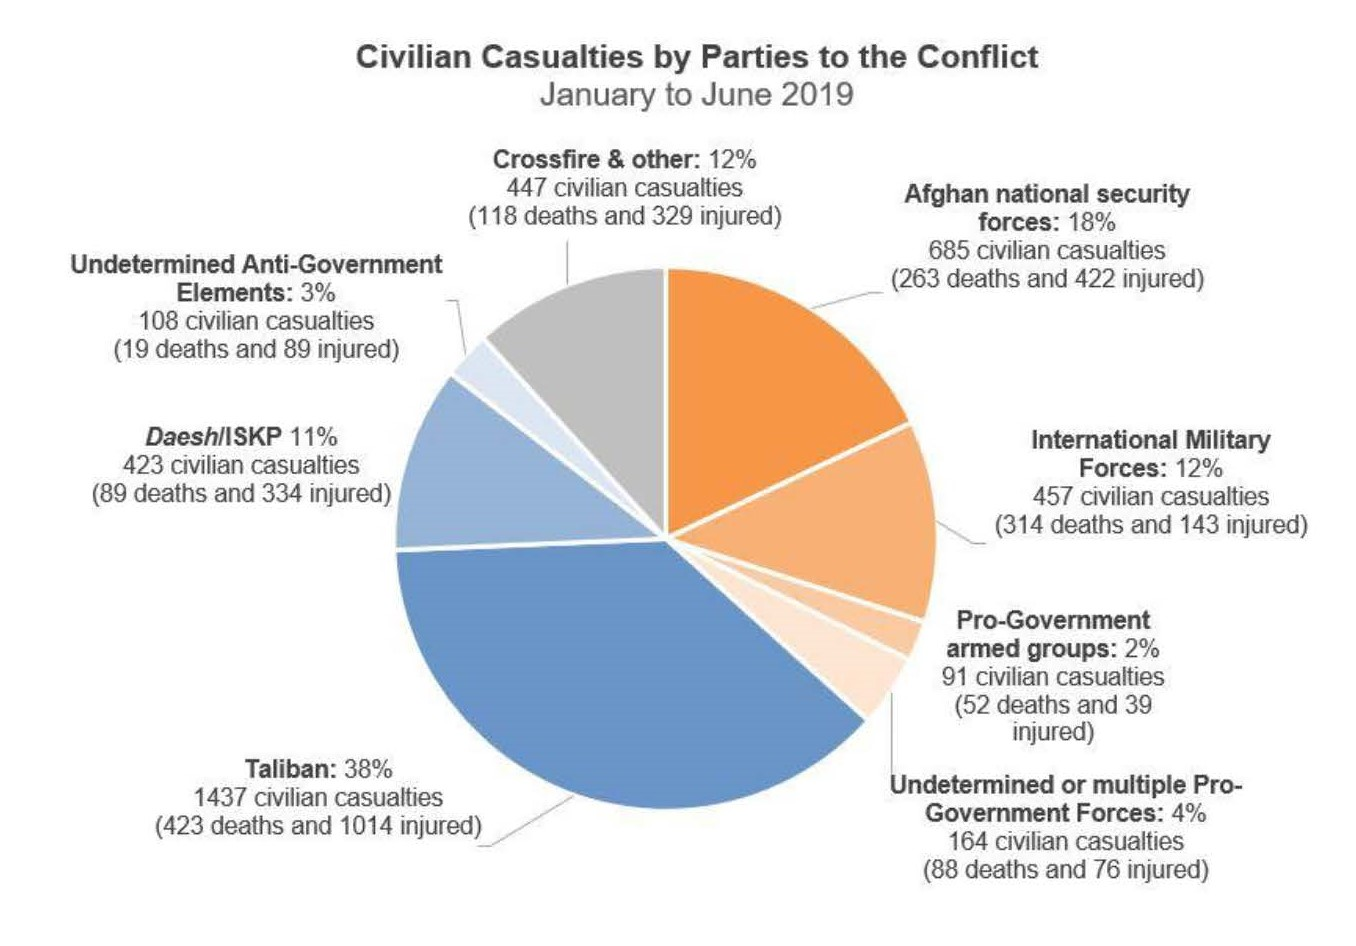 UN urges parties to heed call from Afghans: Zero civilian